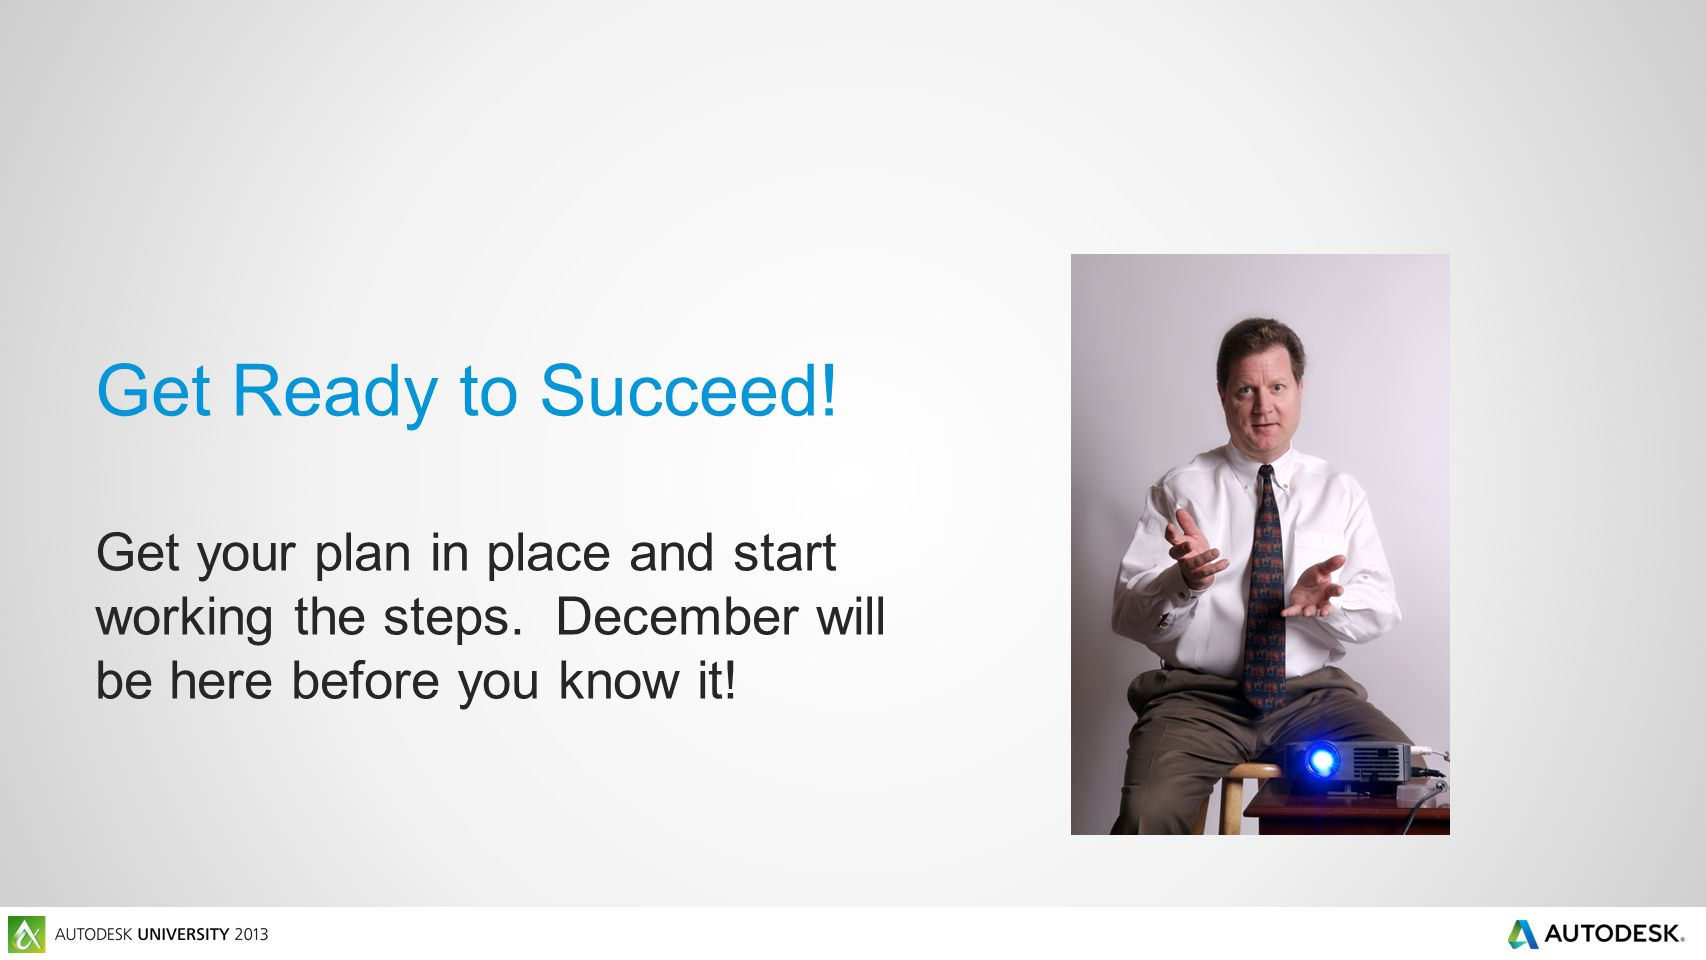 Get Ready to Succeed. Get your plan in place and start working the steps.